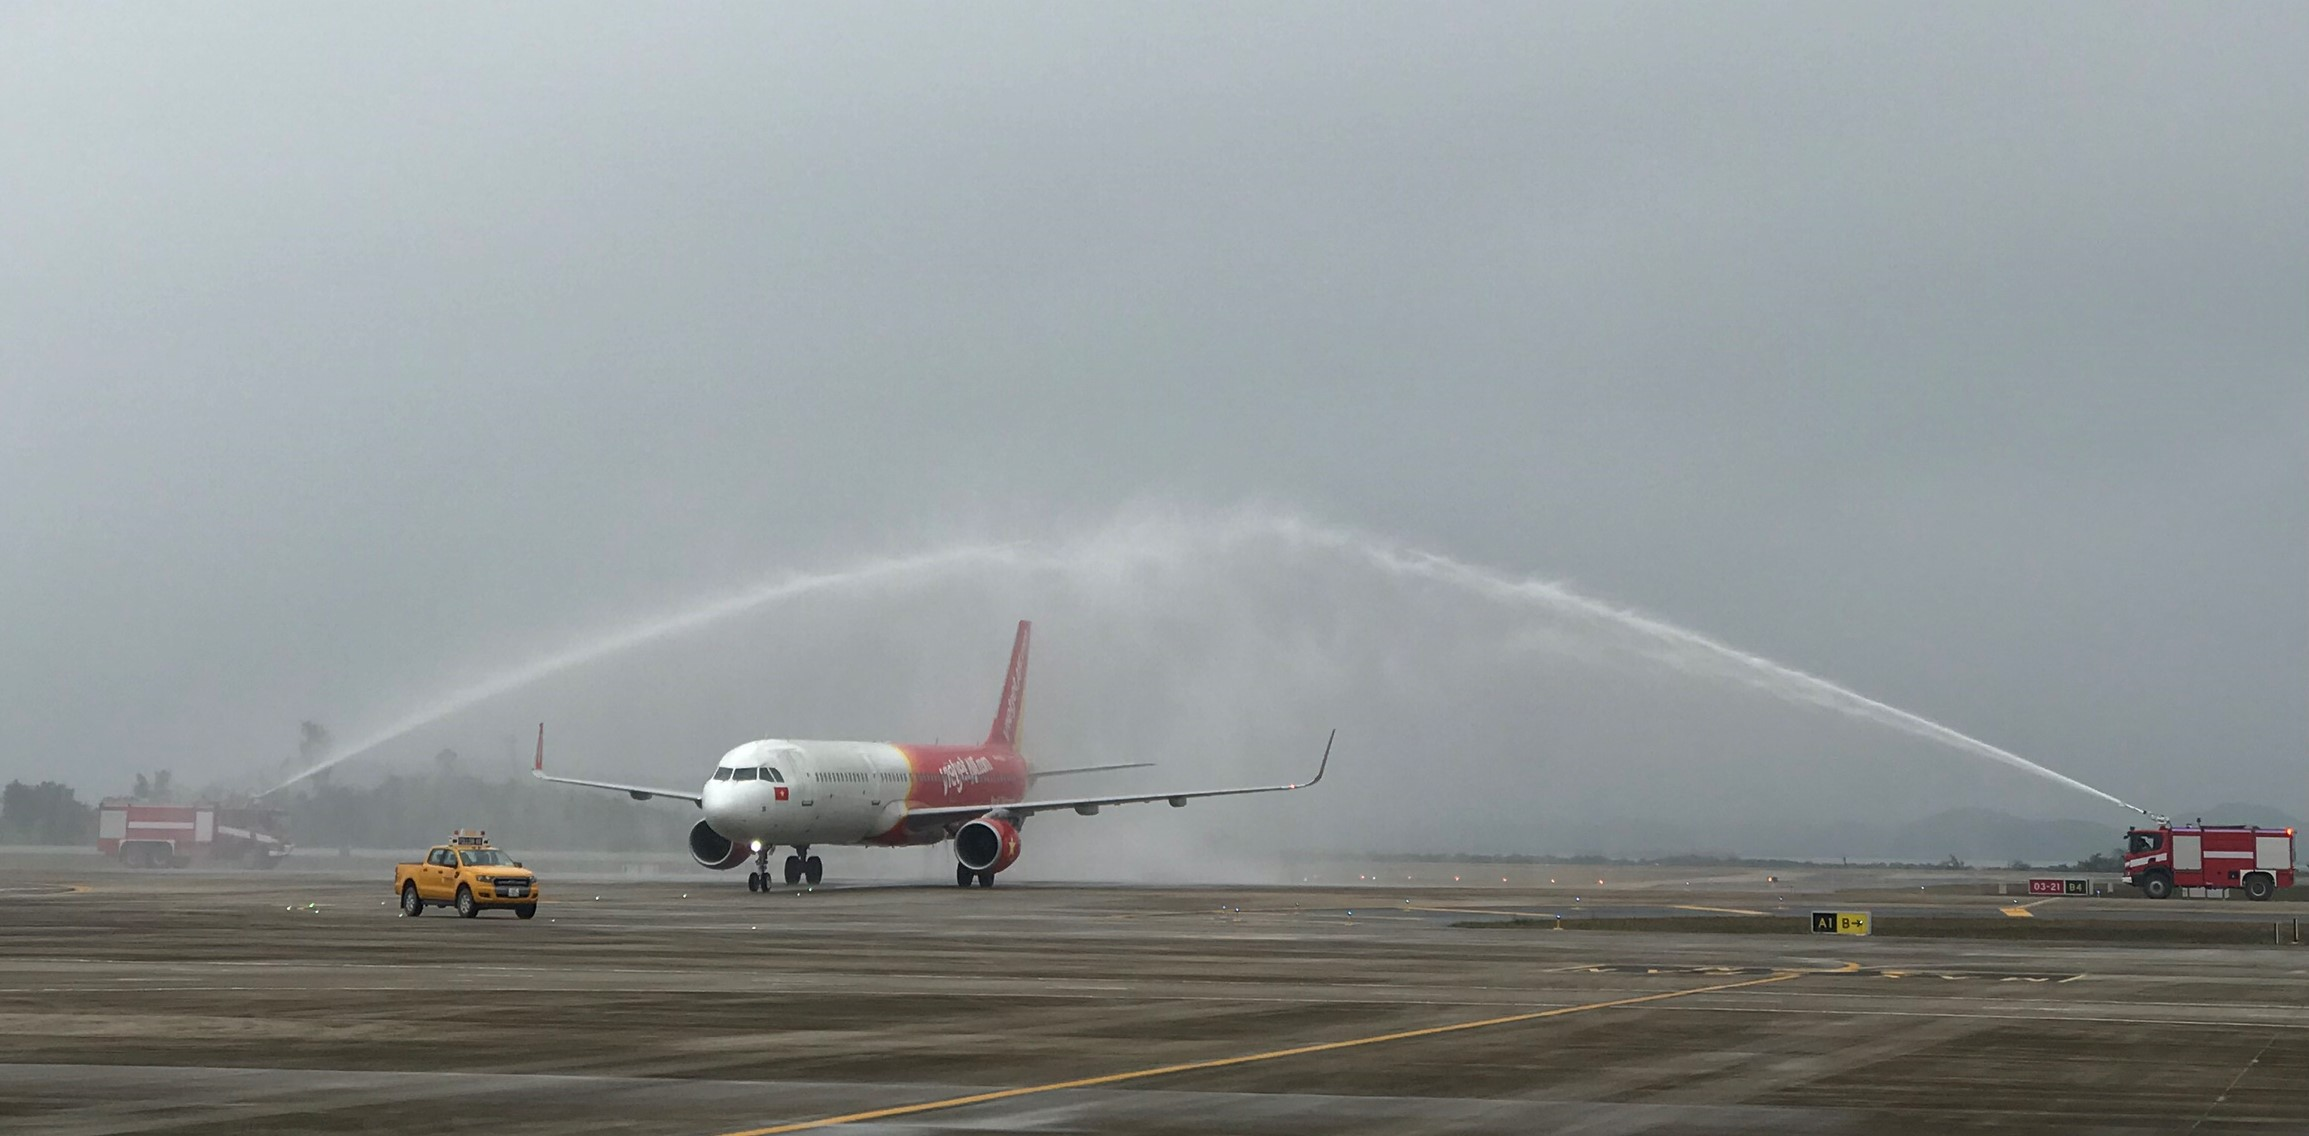 Vietnam's low-cost airline launches flights connecting Ho Chi Minh City and Ha Long Bay home